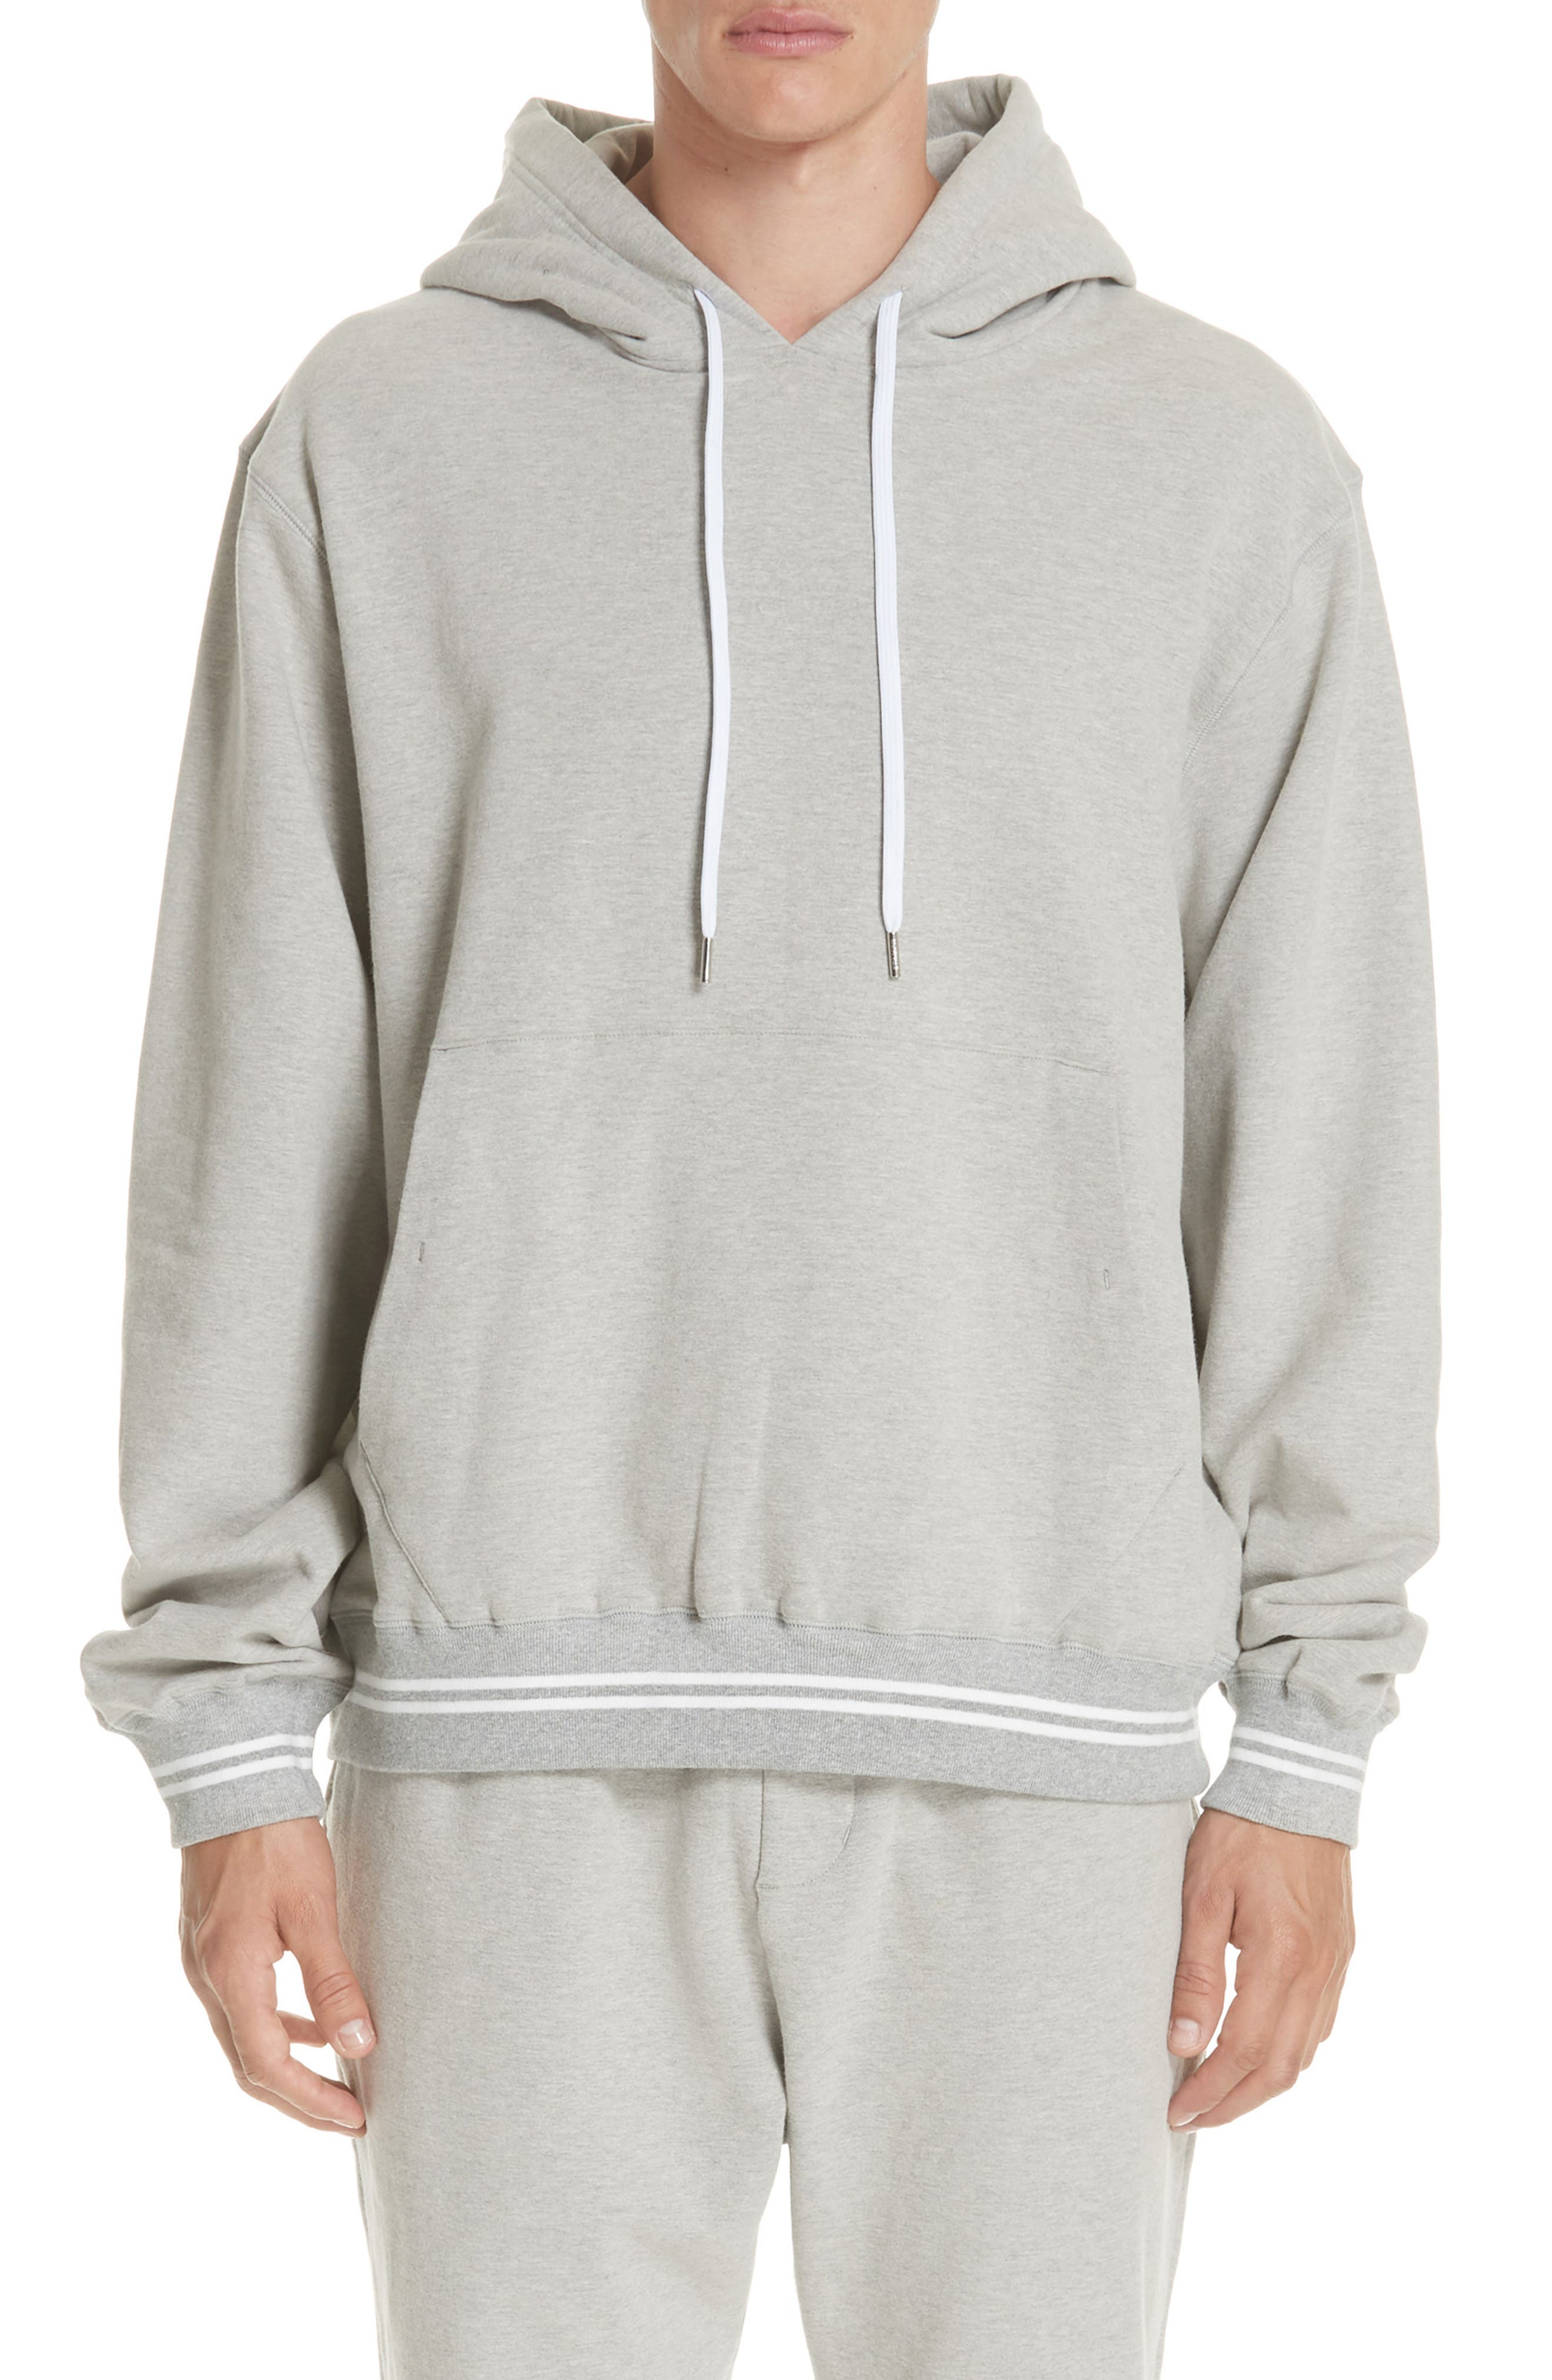 Oversize Hoodie,                             Main thumbnail 1, color,                             HEATHER GREY